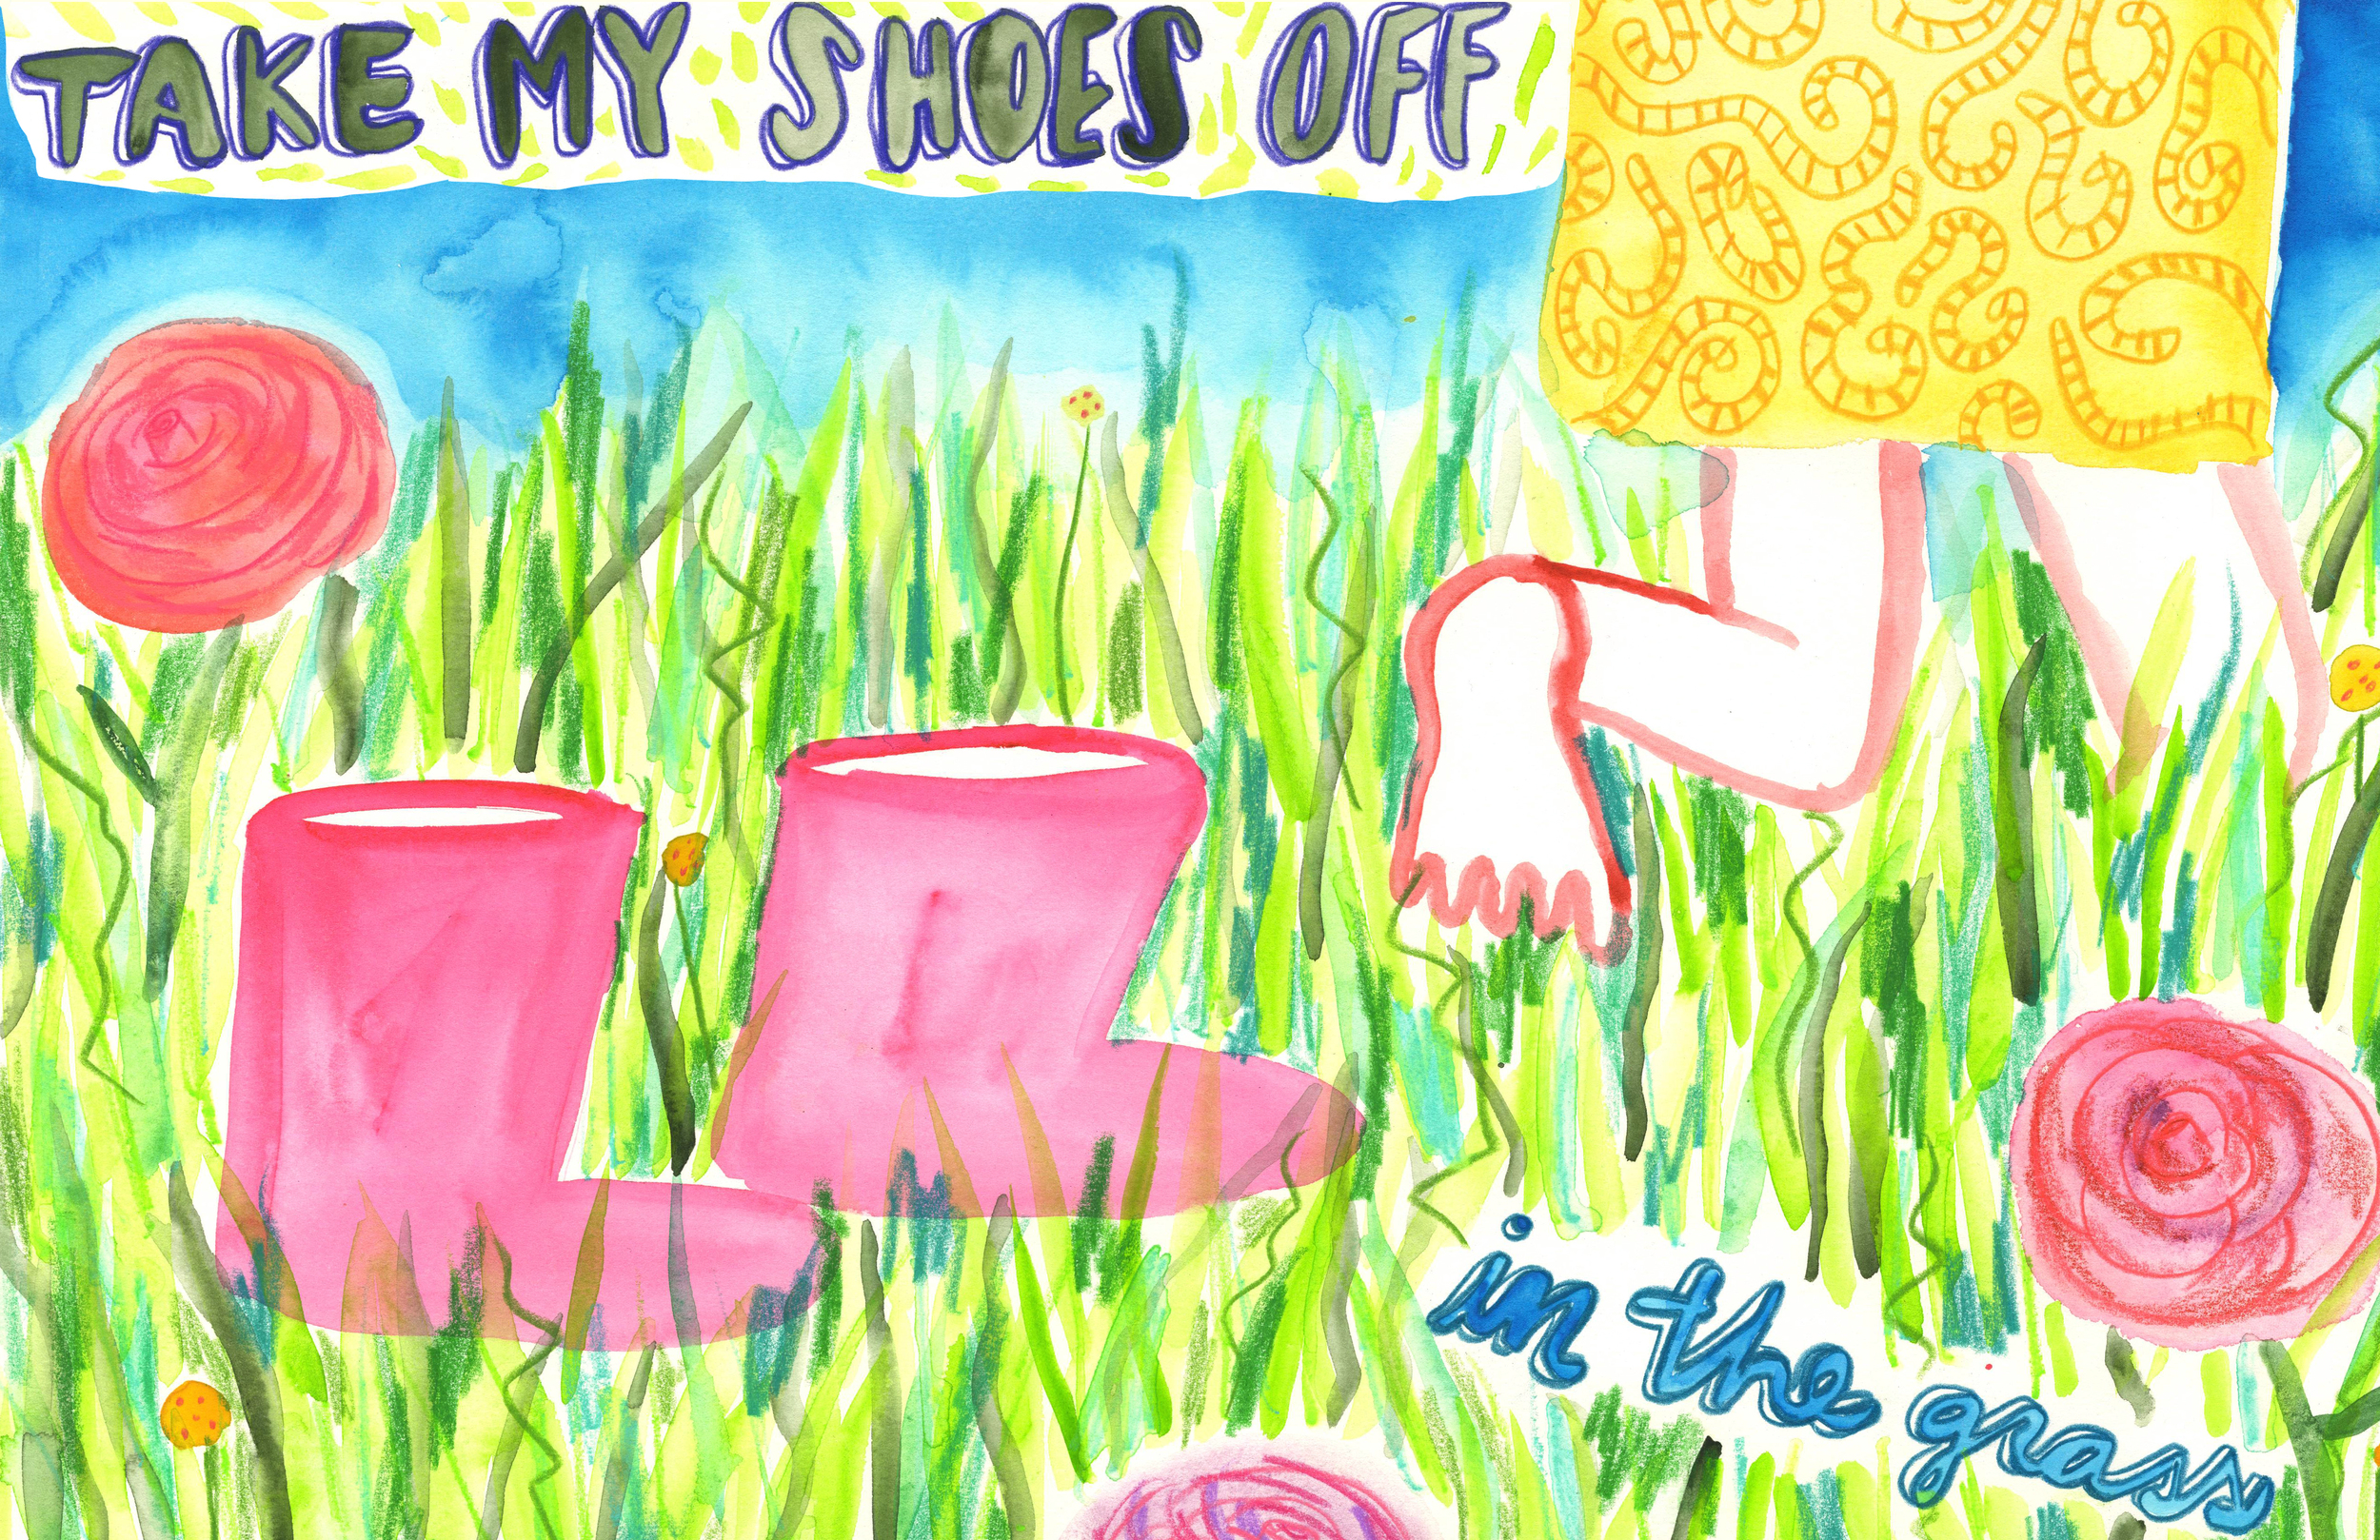 shoesoffgrass2